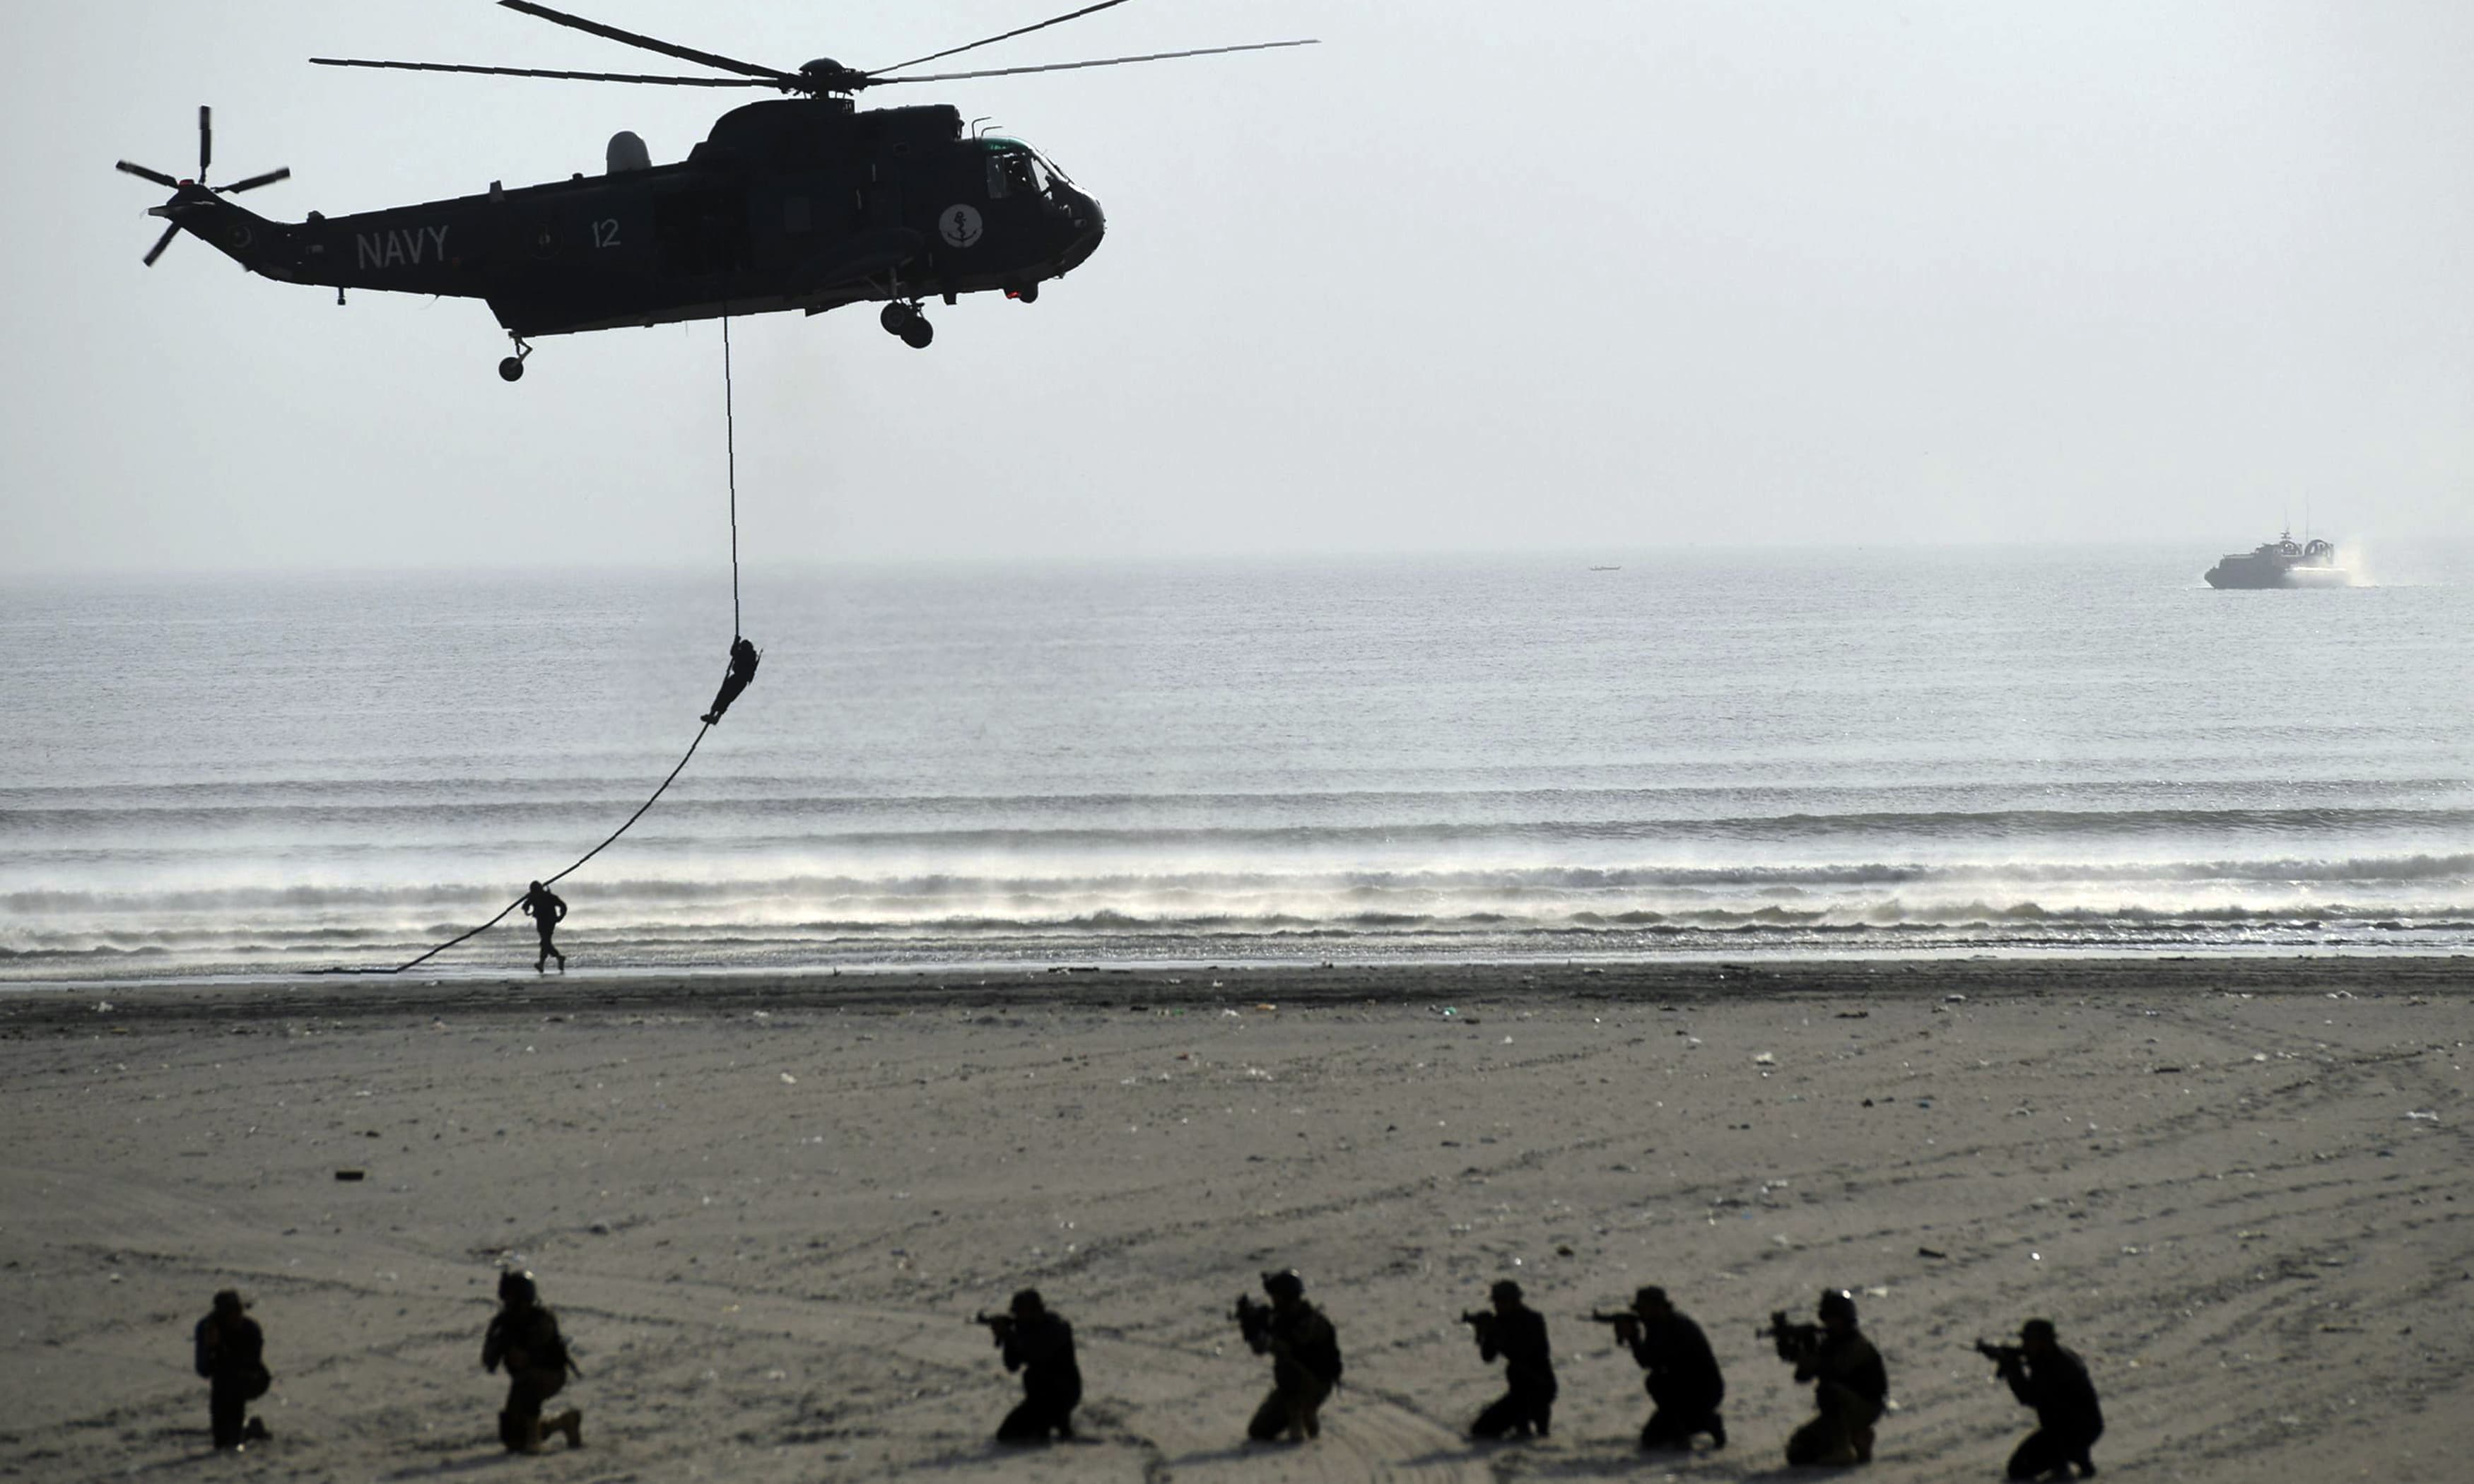 Military personnel take part in a drill during Karachi Show, part of IDEAS-2018. —AFP or licensors